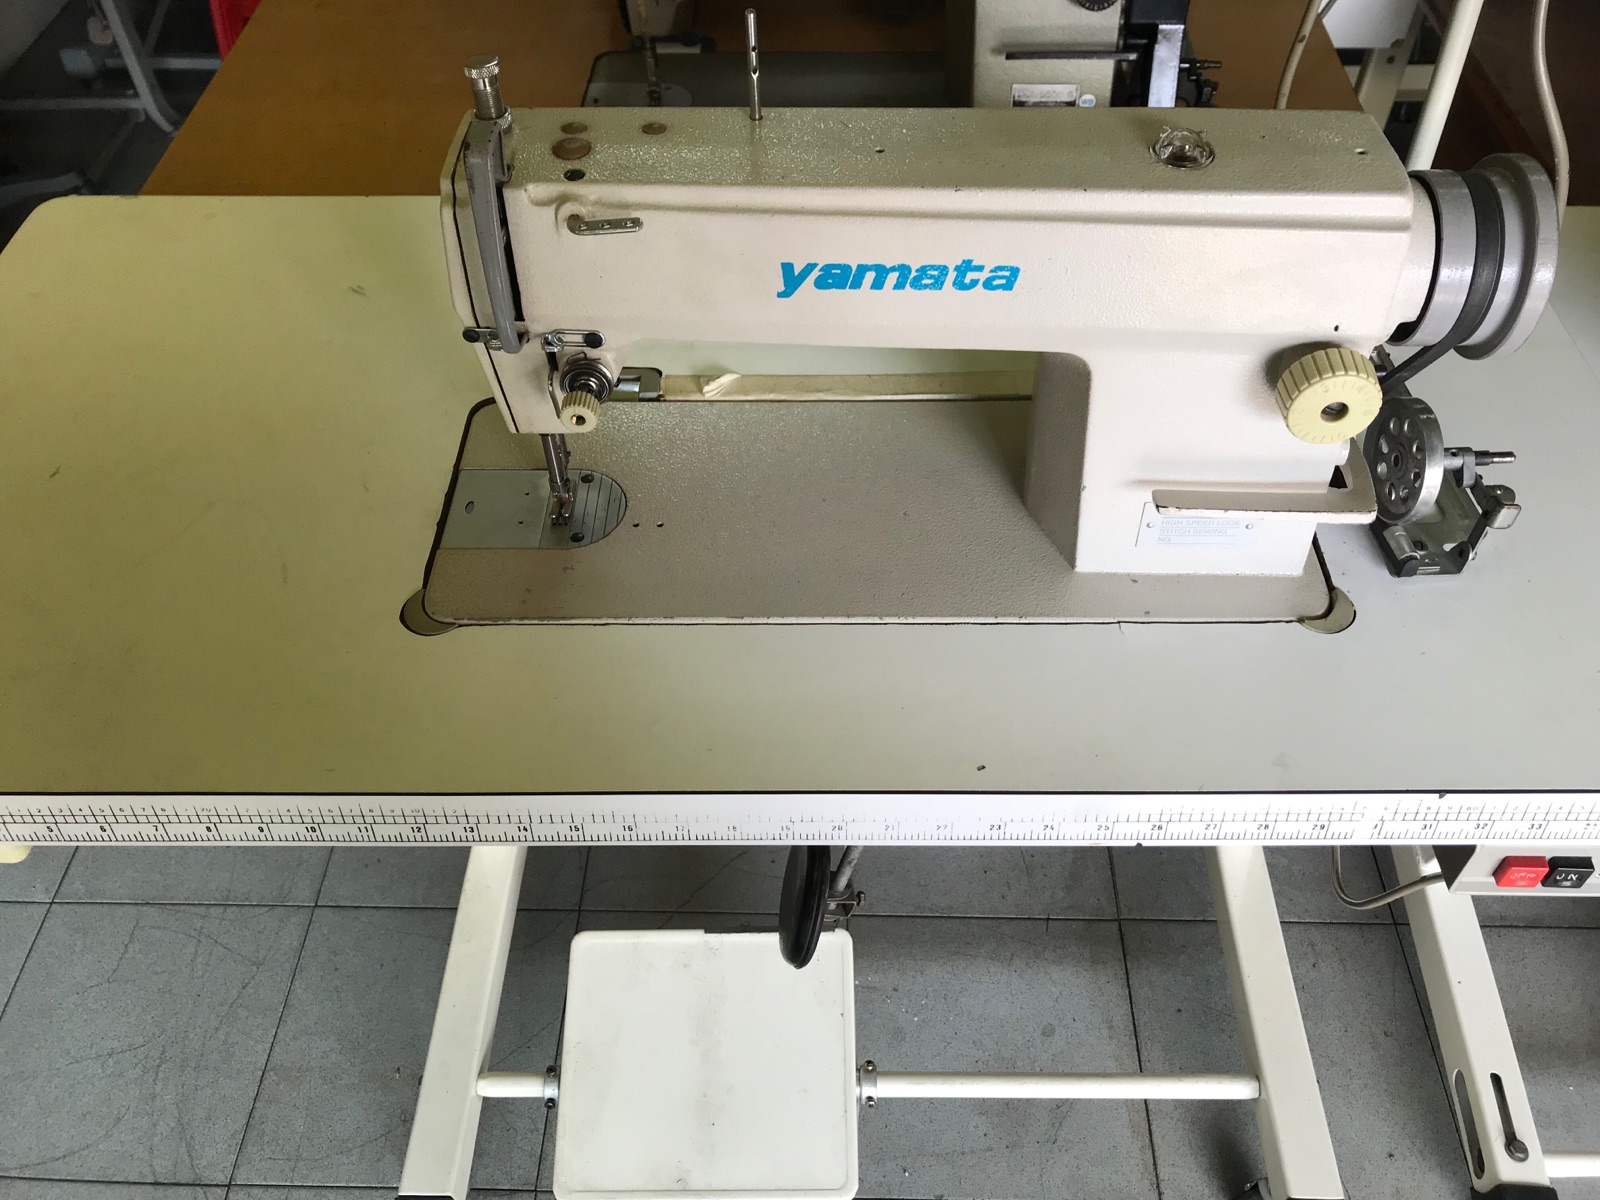 2nd Yamata Hi Speed Sewing Machine